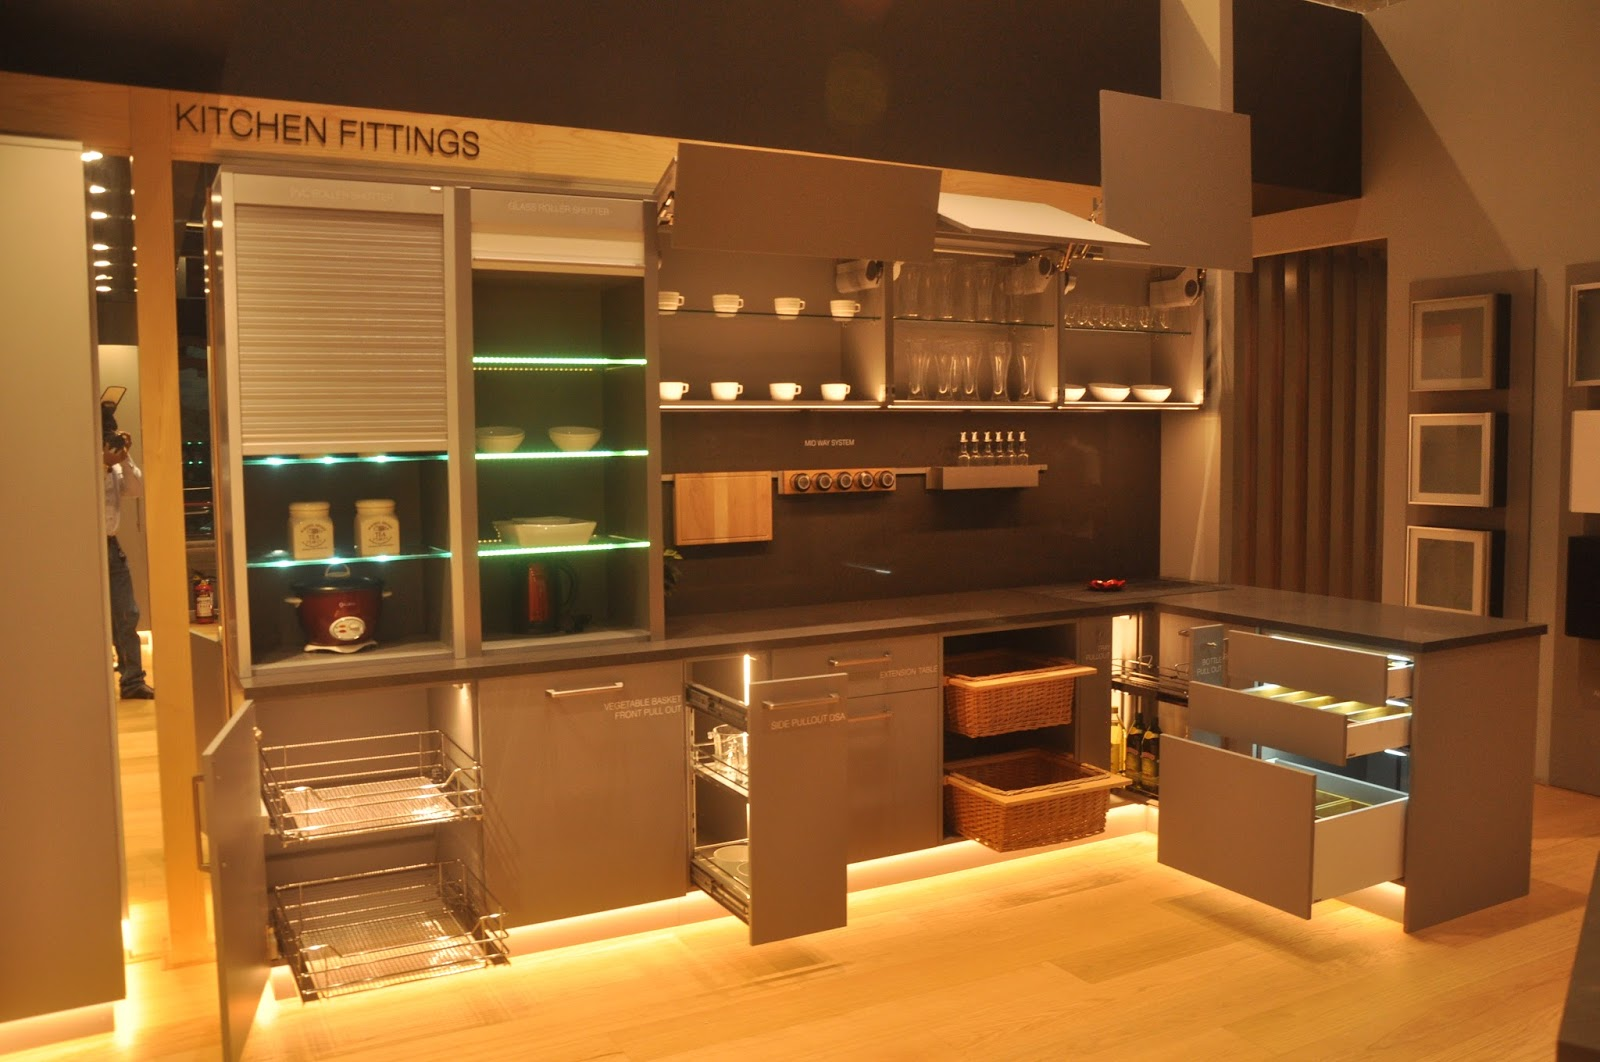 häfele opens a state-of-the-art design showroom in pune | dayinpune